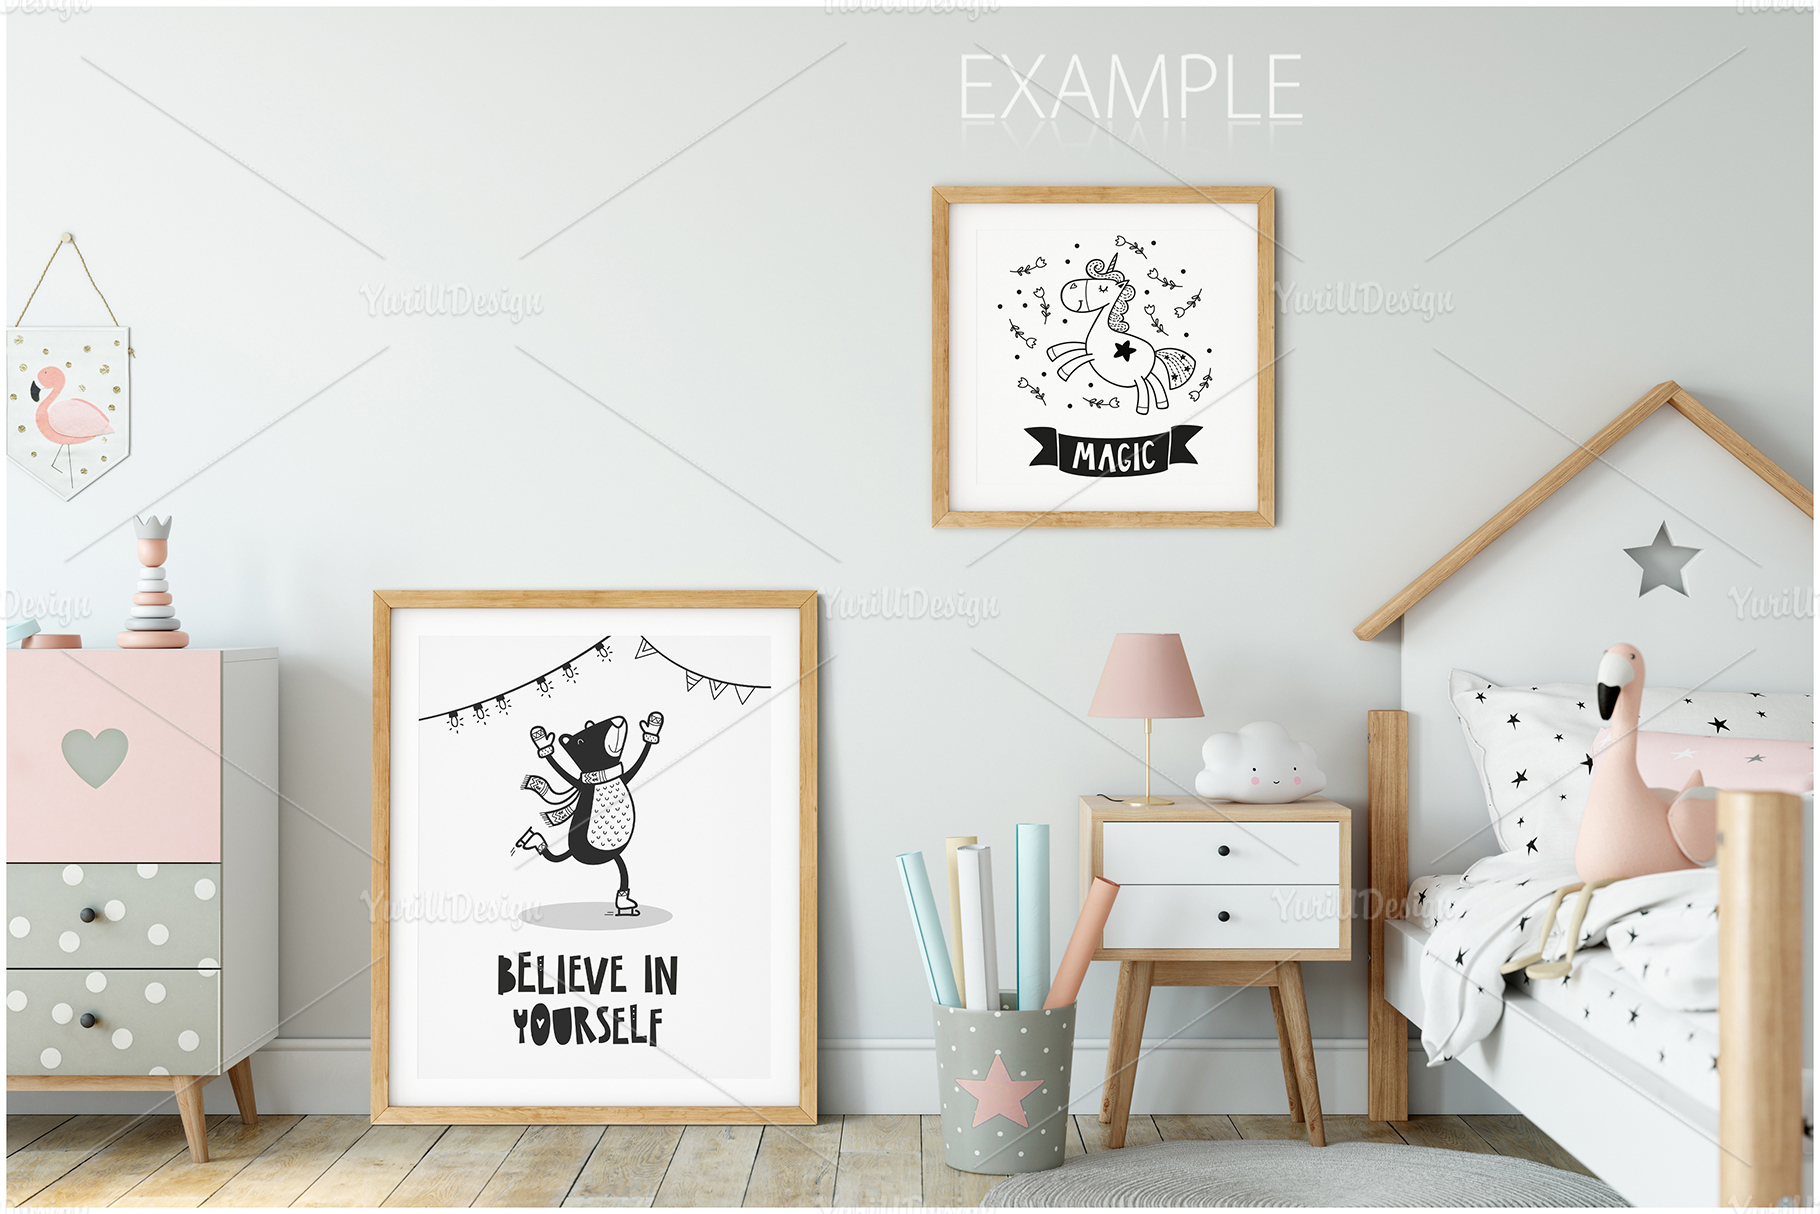 Kids Frames & Wall Mockup Bundle - 5 example image 19